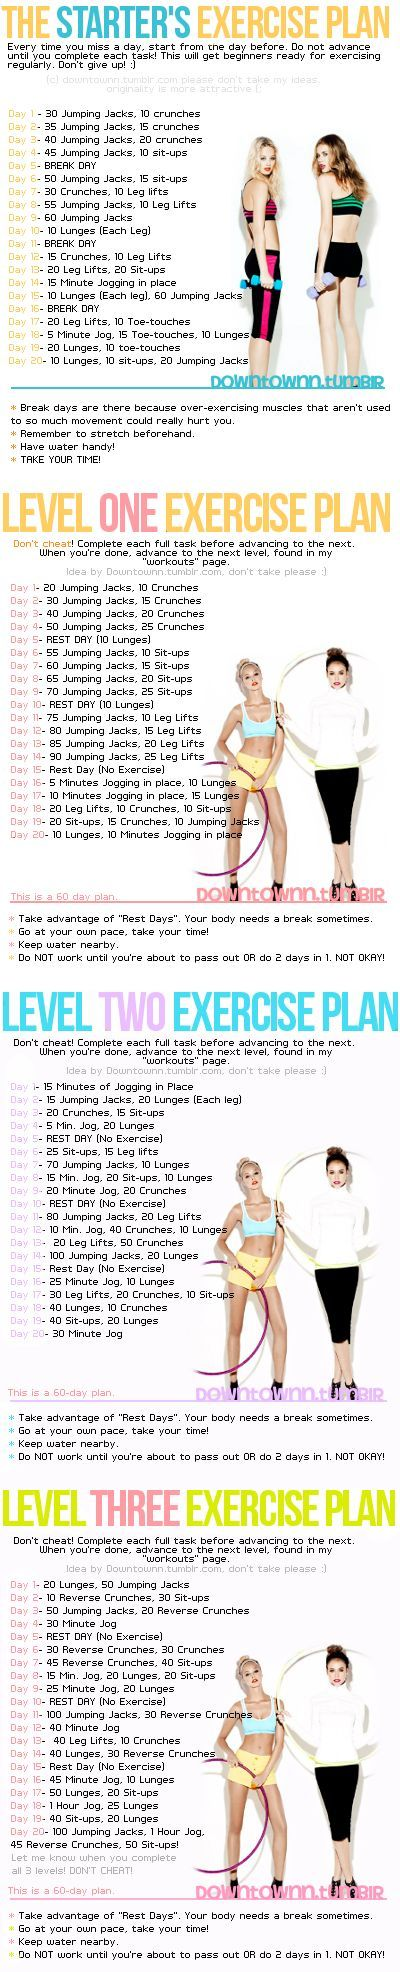 The best weight loss exercise plan. For more visit website :: http://bellastwist.com/rapid-weight-loss/